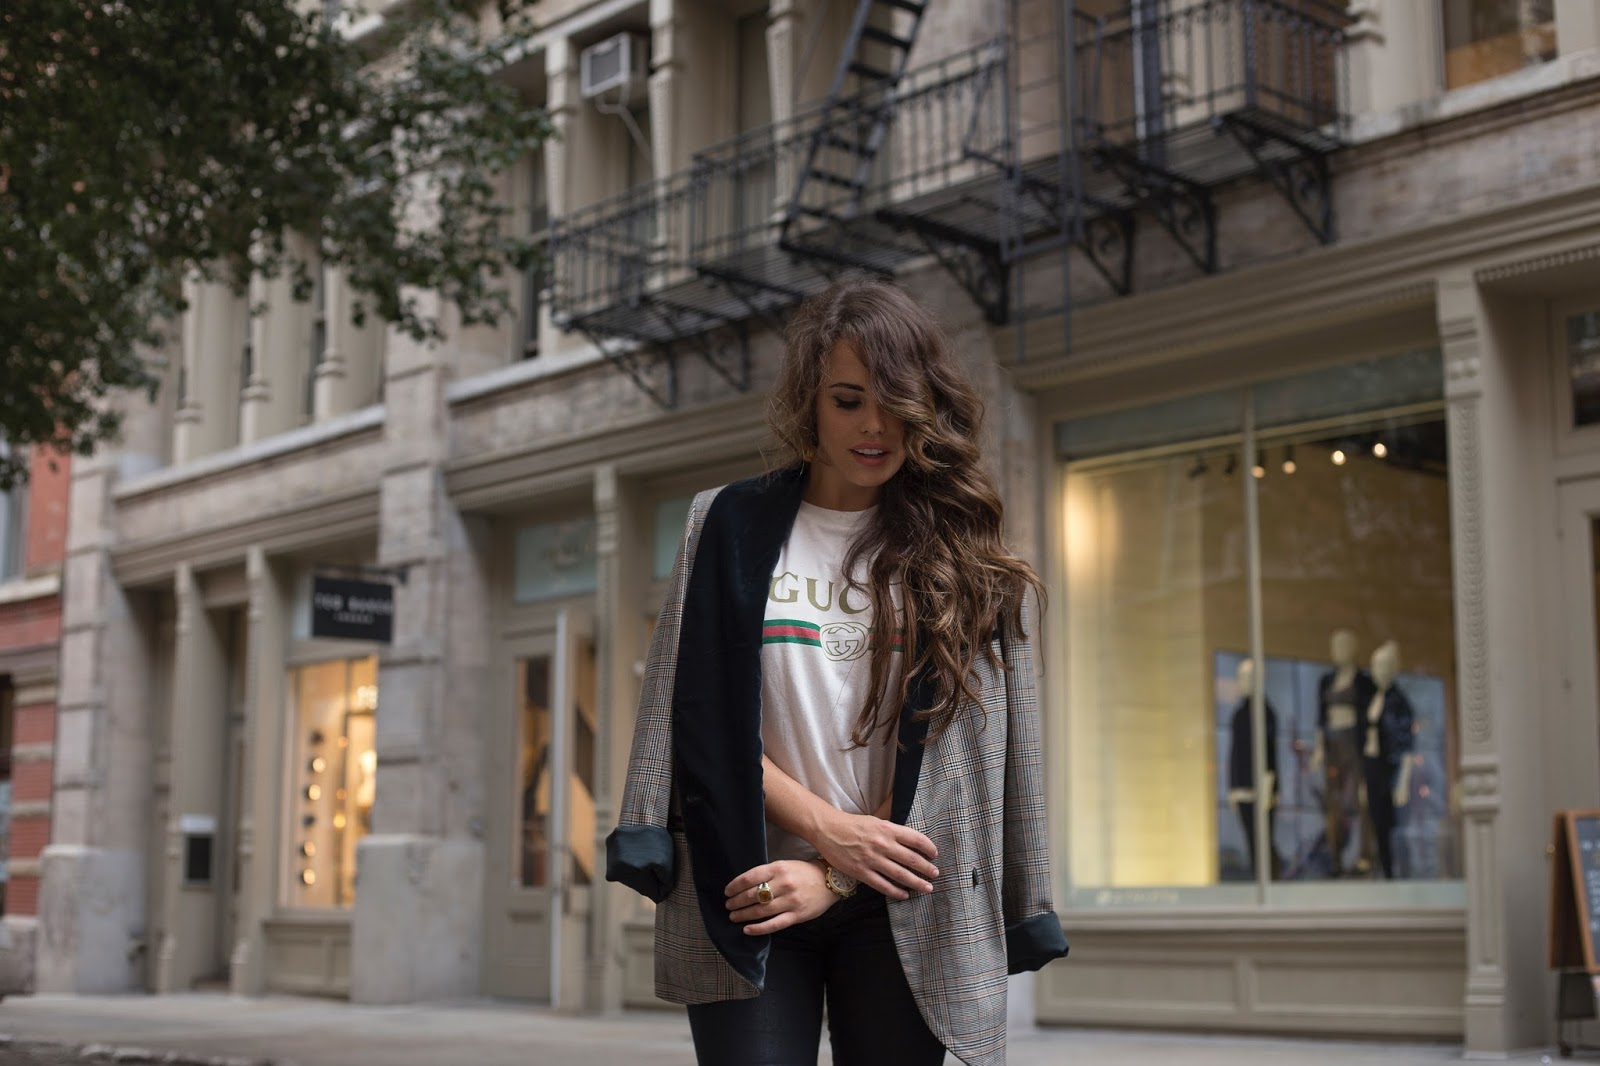 gucci t-shirt, vintage gucci, oversized boyfriend blazer, outfits for the fall, how to dress for fall in nyc, top nyc bloggers, how to style over the knee black boots, how to style a gucci t, how to wear a boyfriend blazer, free people blazer, plaid boyfriend blazer, affordable black skinny jeans, nyc street style, new york style, how to grow your personal brand, personal brand, new blogger